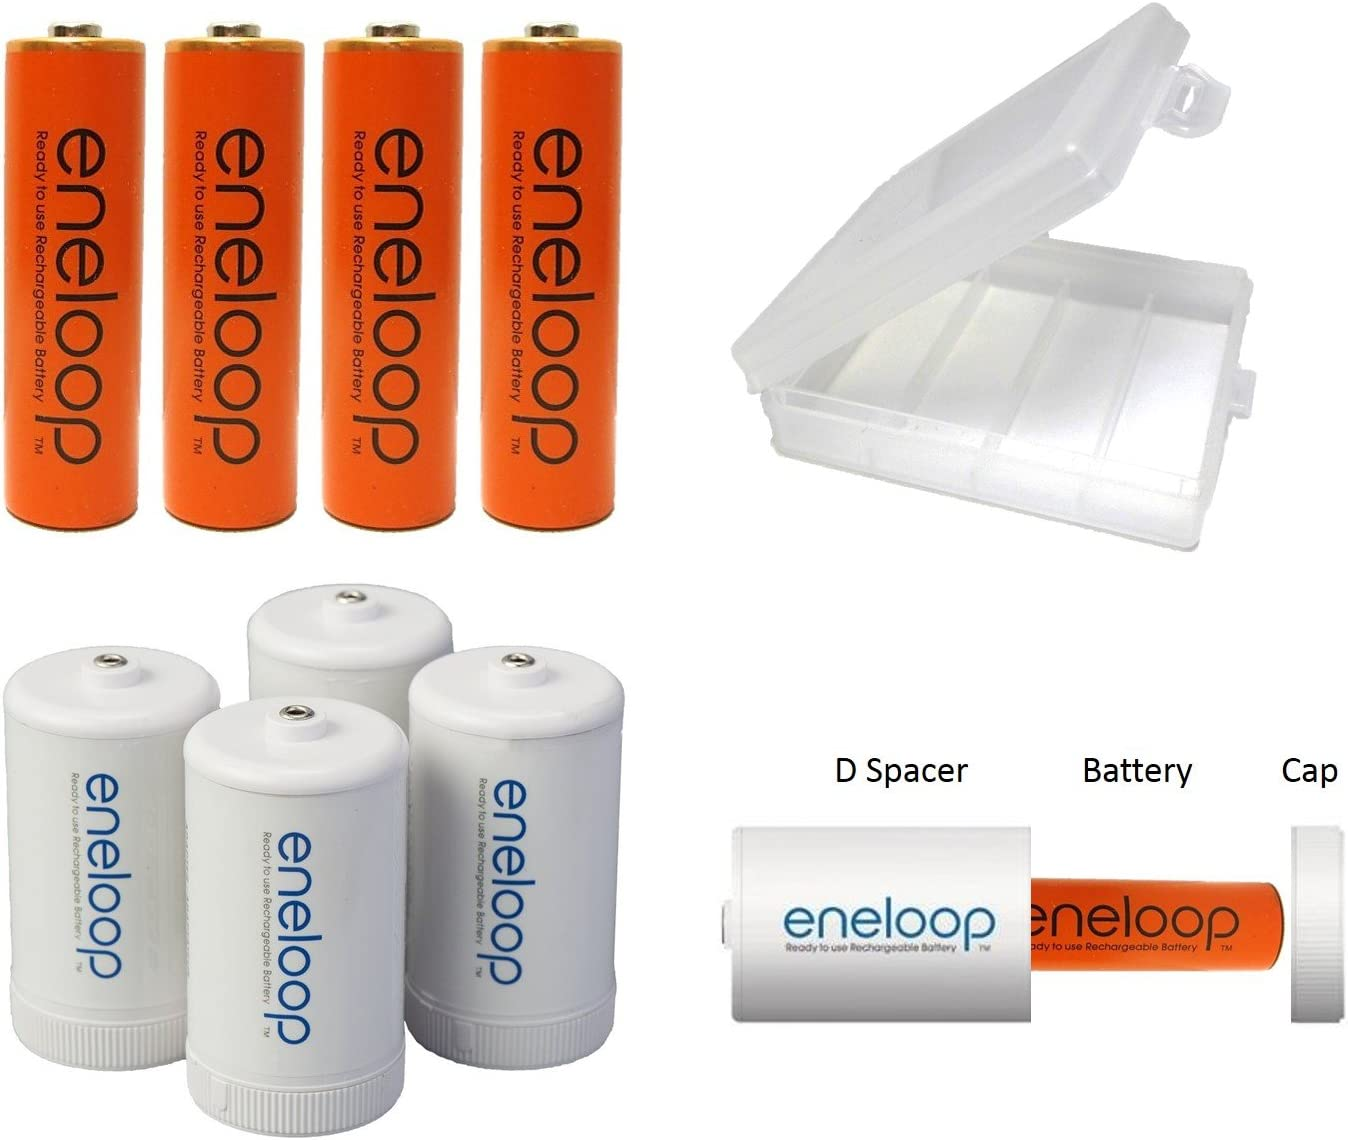 Plus AA Holder 4 Panasonic EneloopD Batteries for Flashlights and Other Devices Comprised of 4 AA NiMH Pre-Charged RechargeableOrange Batteries and 4D Spacers